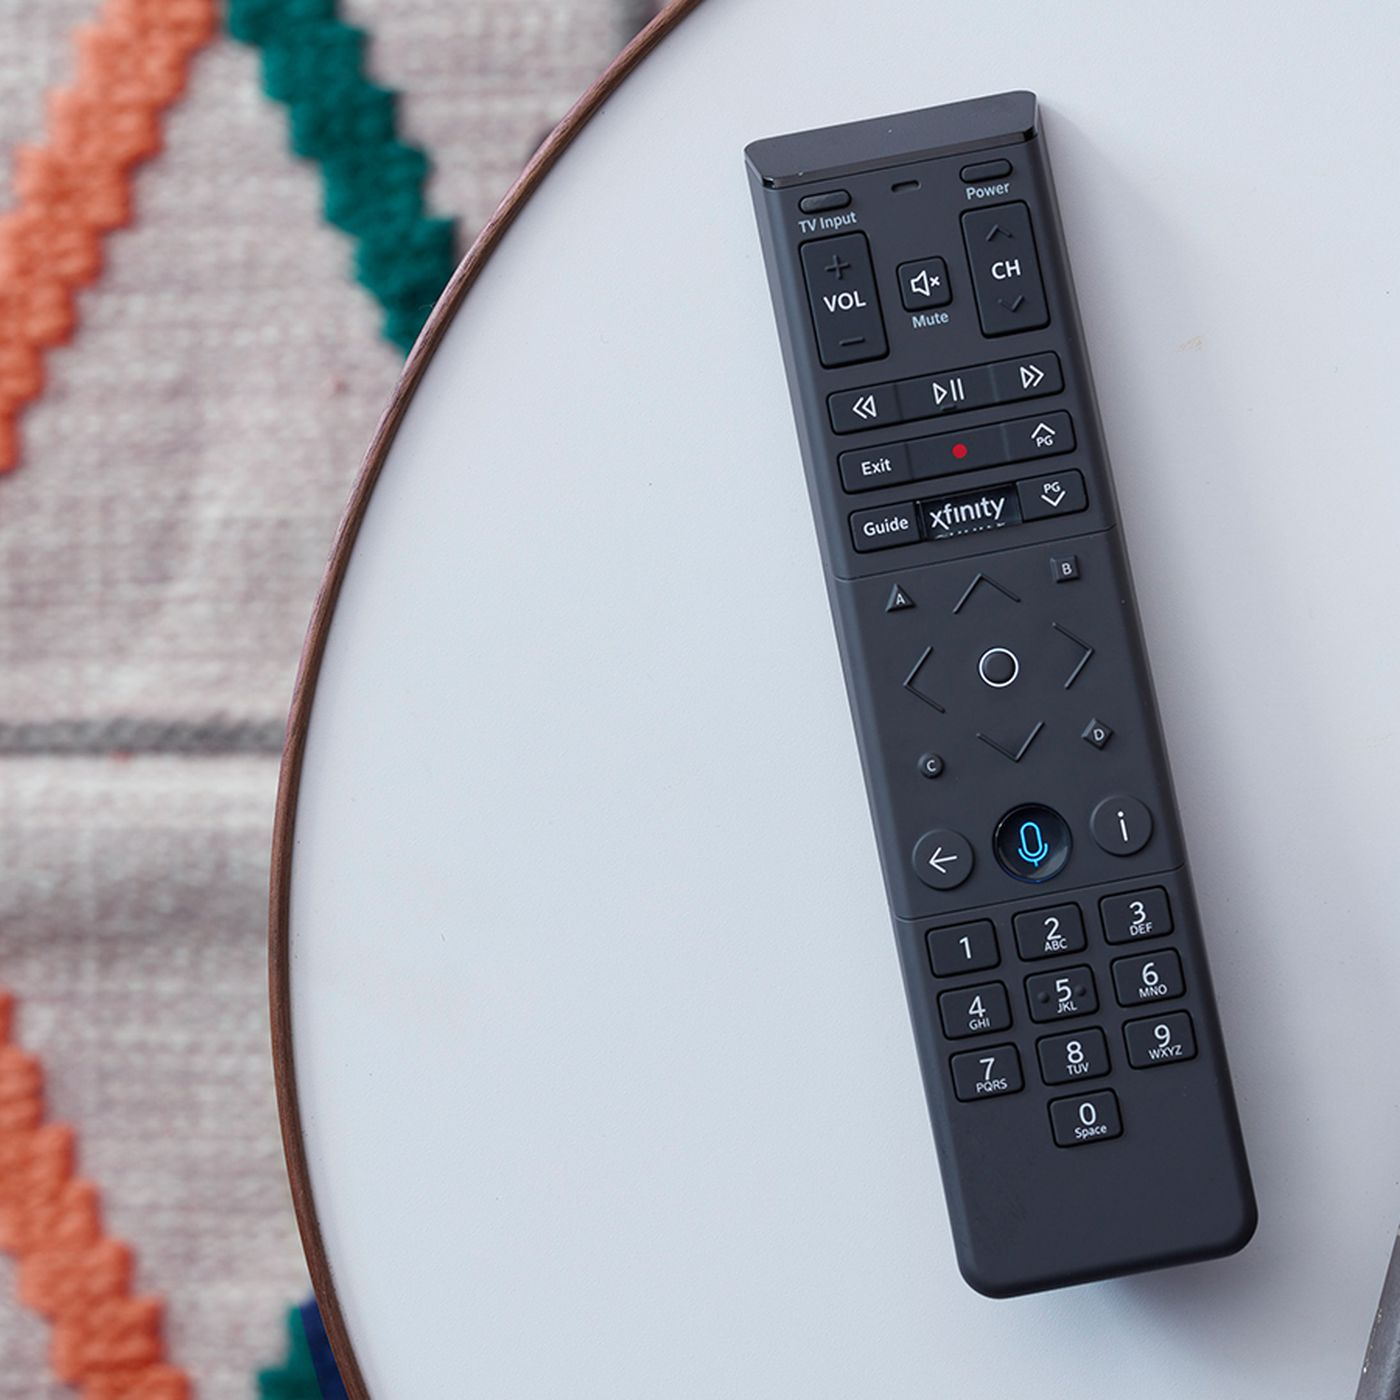 Comcast S Redesigned X1 Voice Remote Can Locate Your Cellphone The Verge